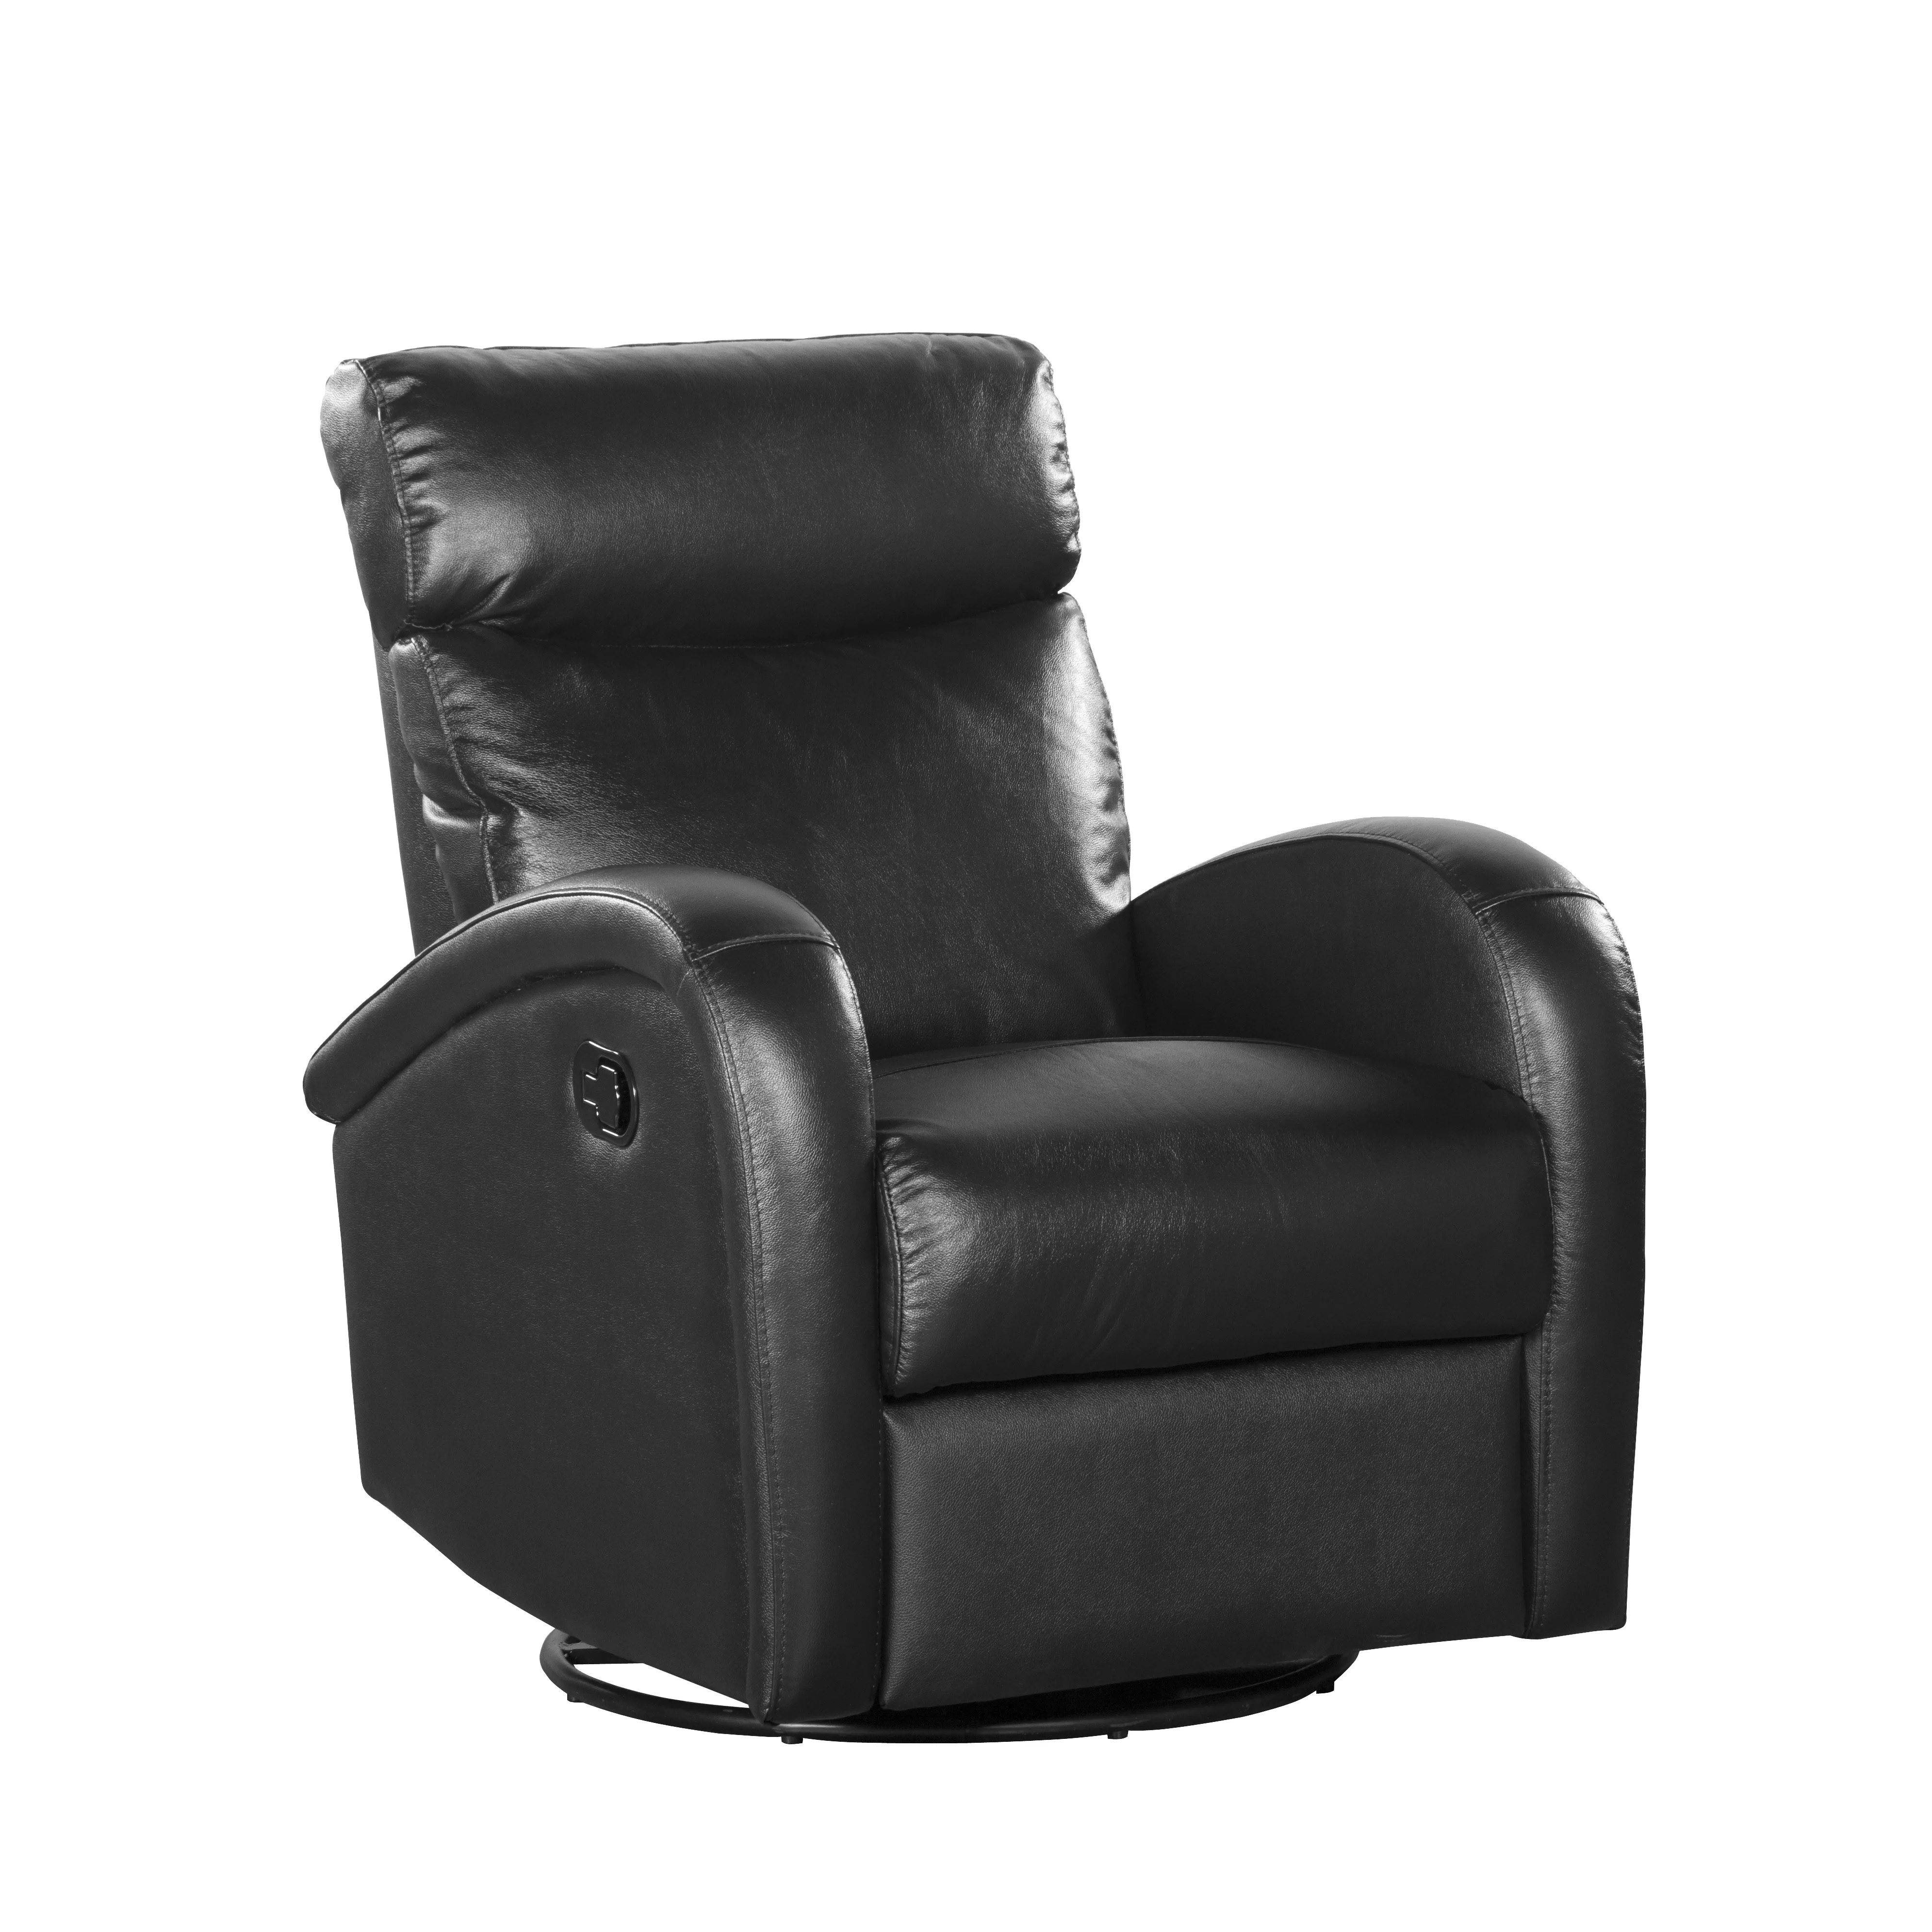 push button recliner chairs fitted chair covers shermag leather and reviews wayfair